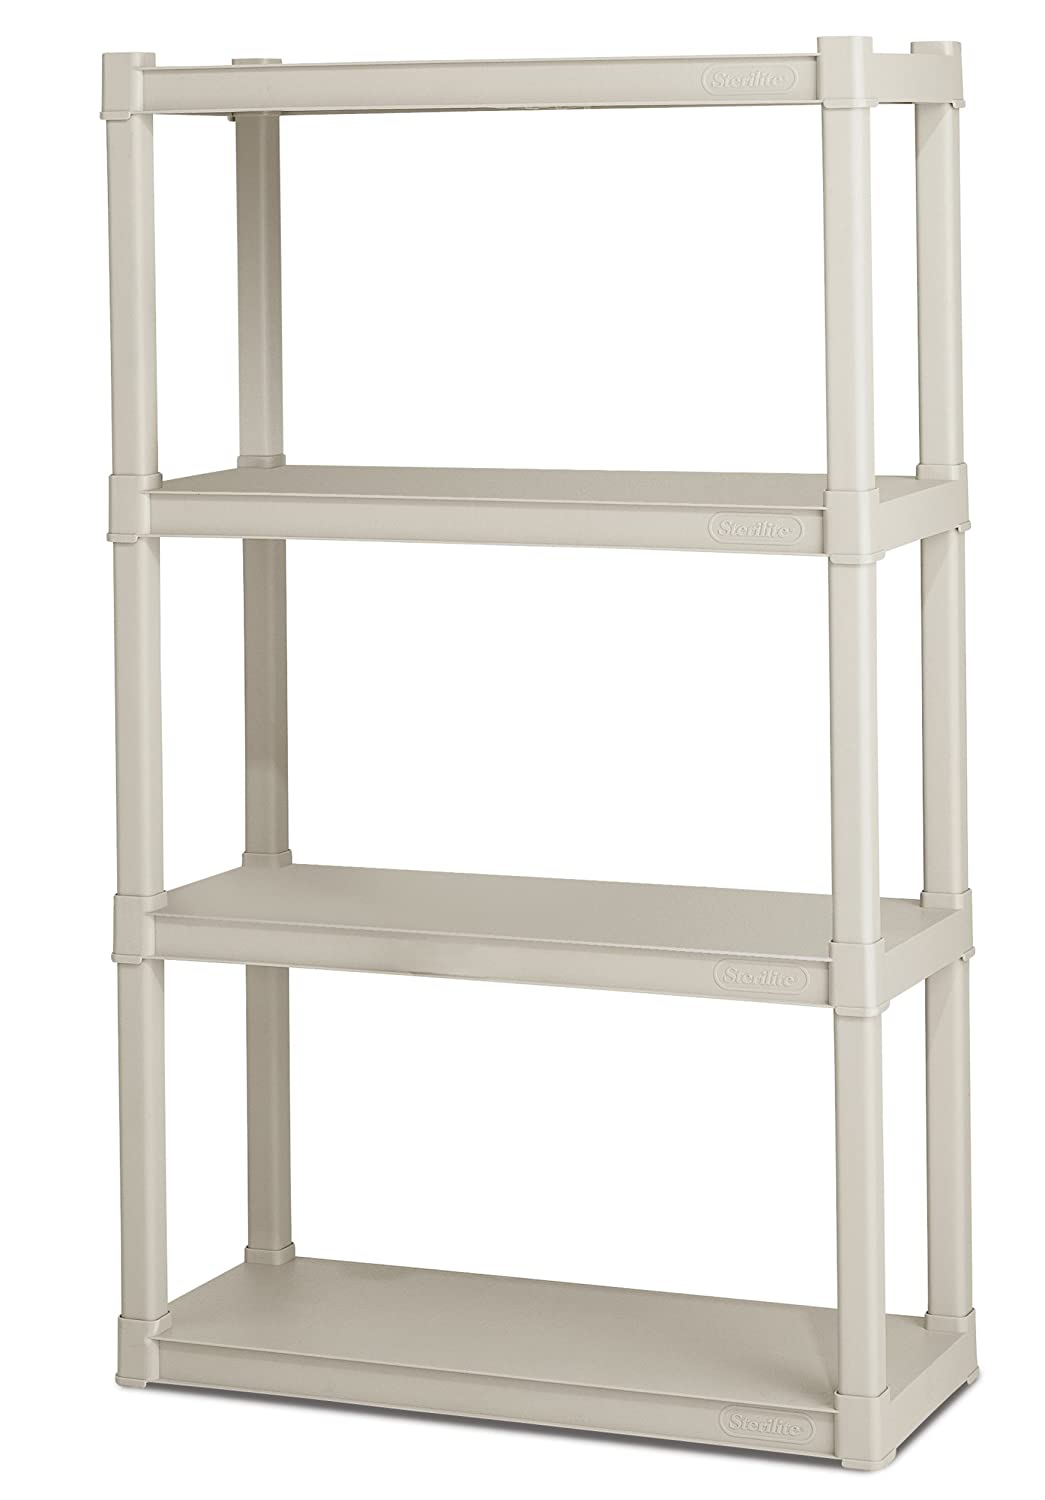 Sterilite Heavy Duty Shelving.